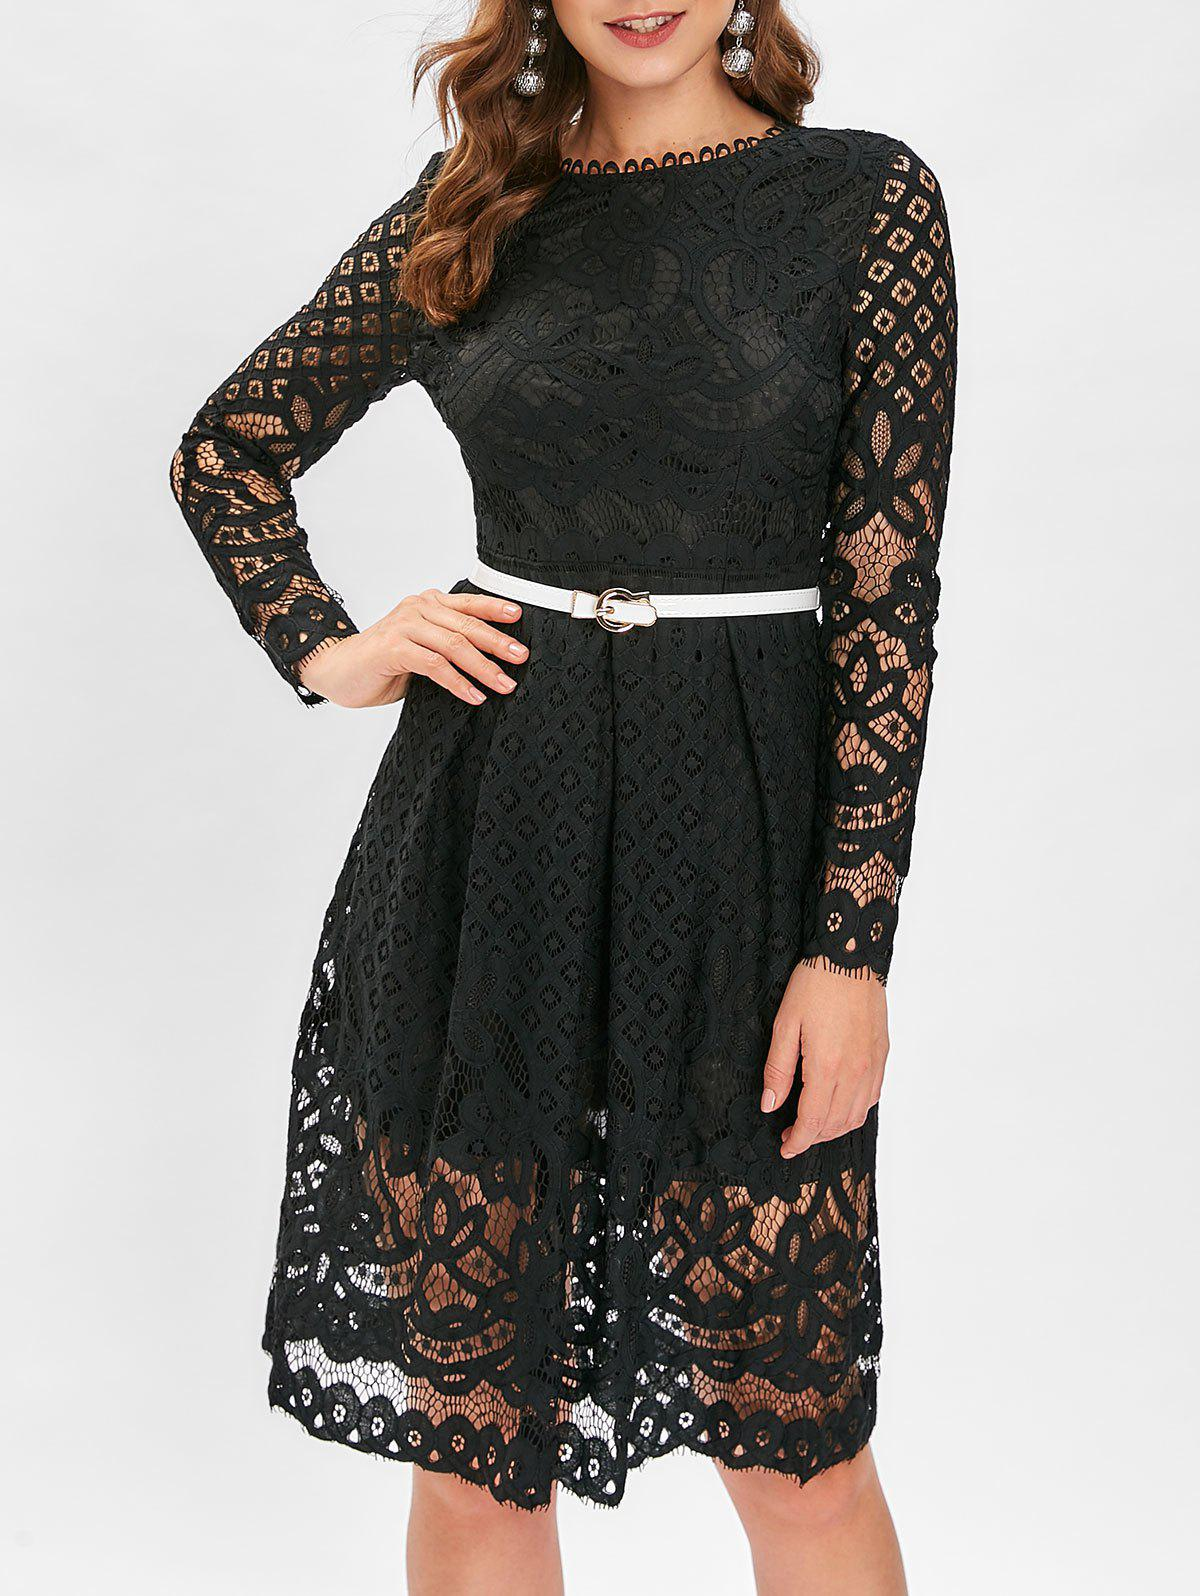 Chic Belted Lace A Line Dress